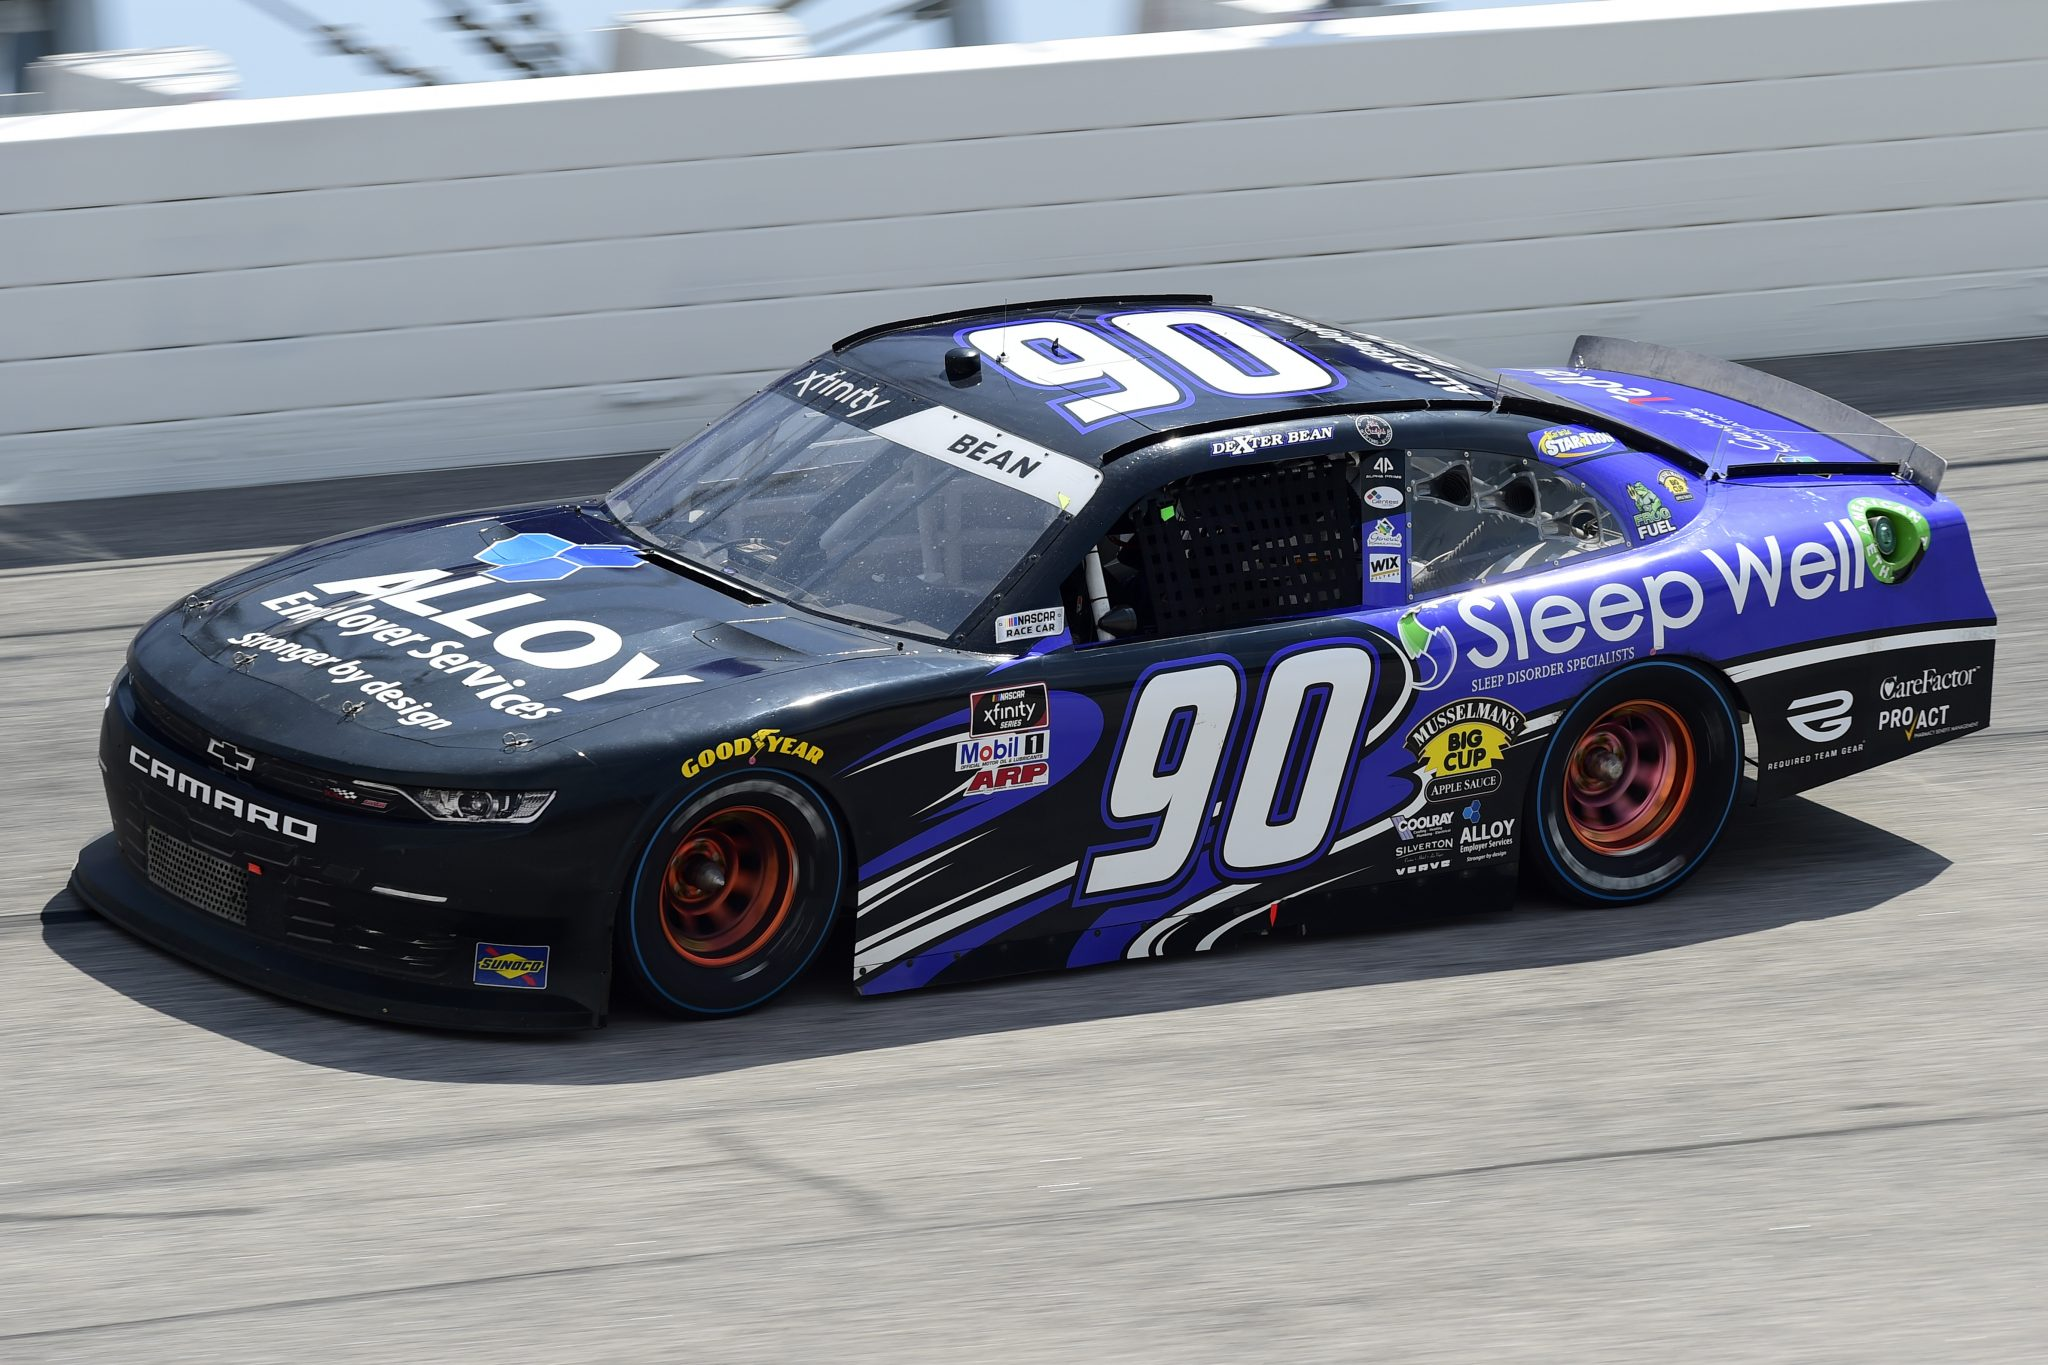 DARLINGTON, SOUTH CAROLINA - SEPTEMBER 05: Dexter Bean, driver of the #90 Chevrolet, drives during the NASCAR Xfinity Series Sport Clips Haircuts VFW 200 at Darlington Raceway on September 05, 2020 in Darlington, South Carolina. (Photo by Jared C. Tilton/Getty Images) | Getty Images